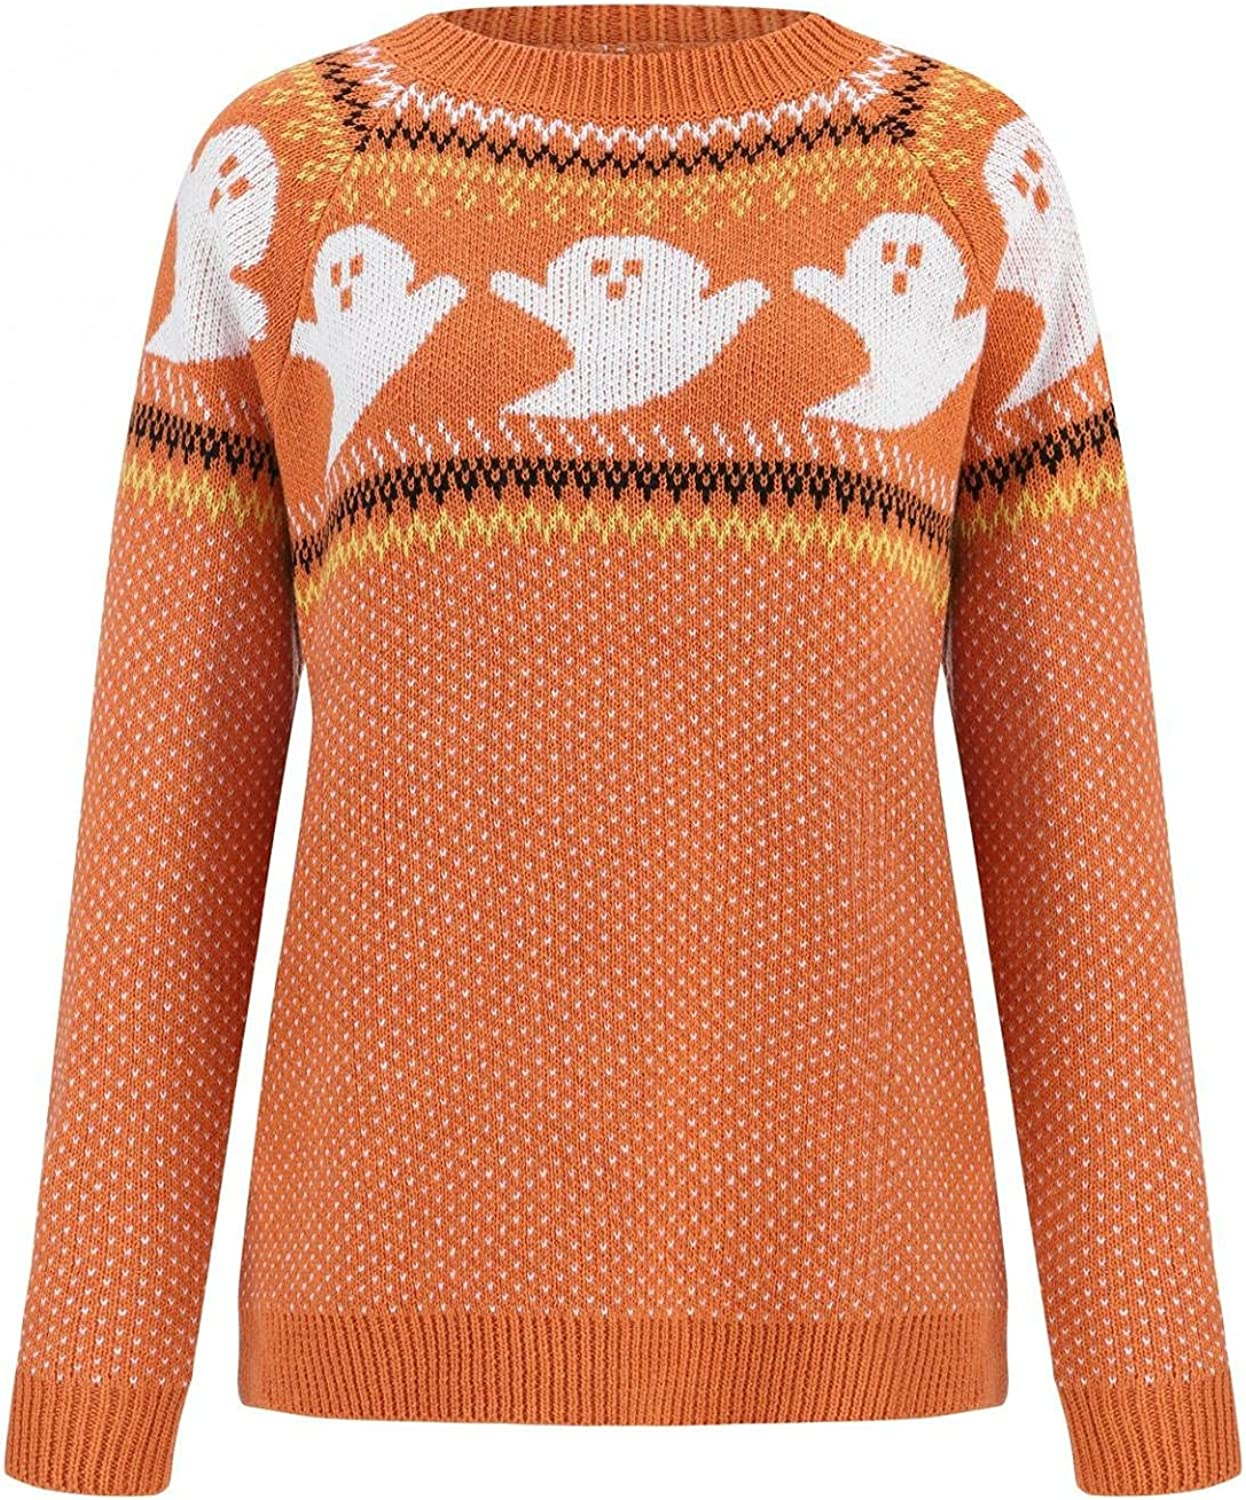 Wisgofre Women's Ugly Sweater Halloween Cute Ghost Graphic Sweatshirt Pullover Loose Knitted Long Sleeve Y2K Tops